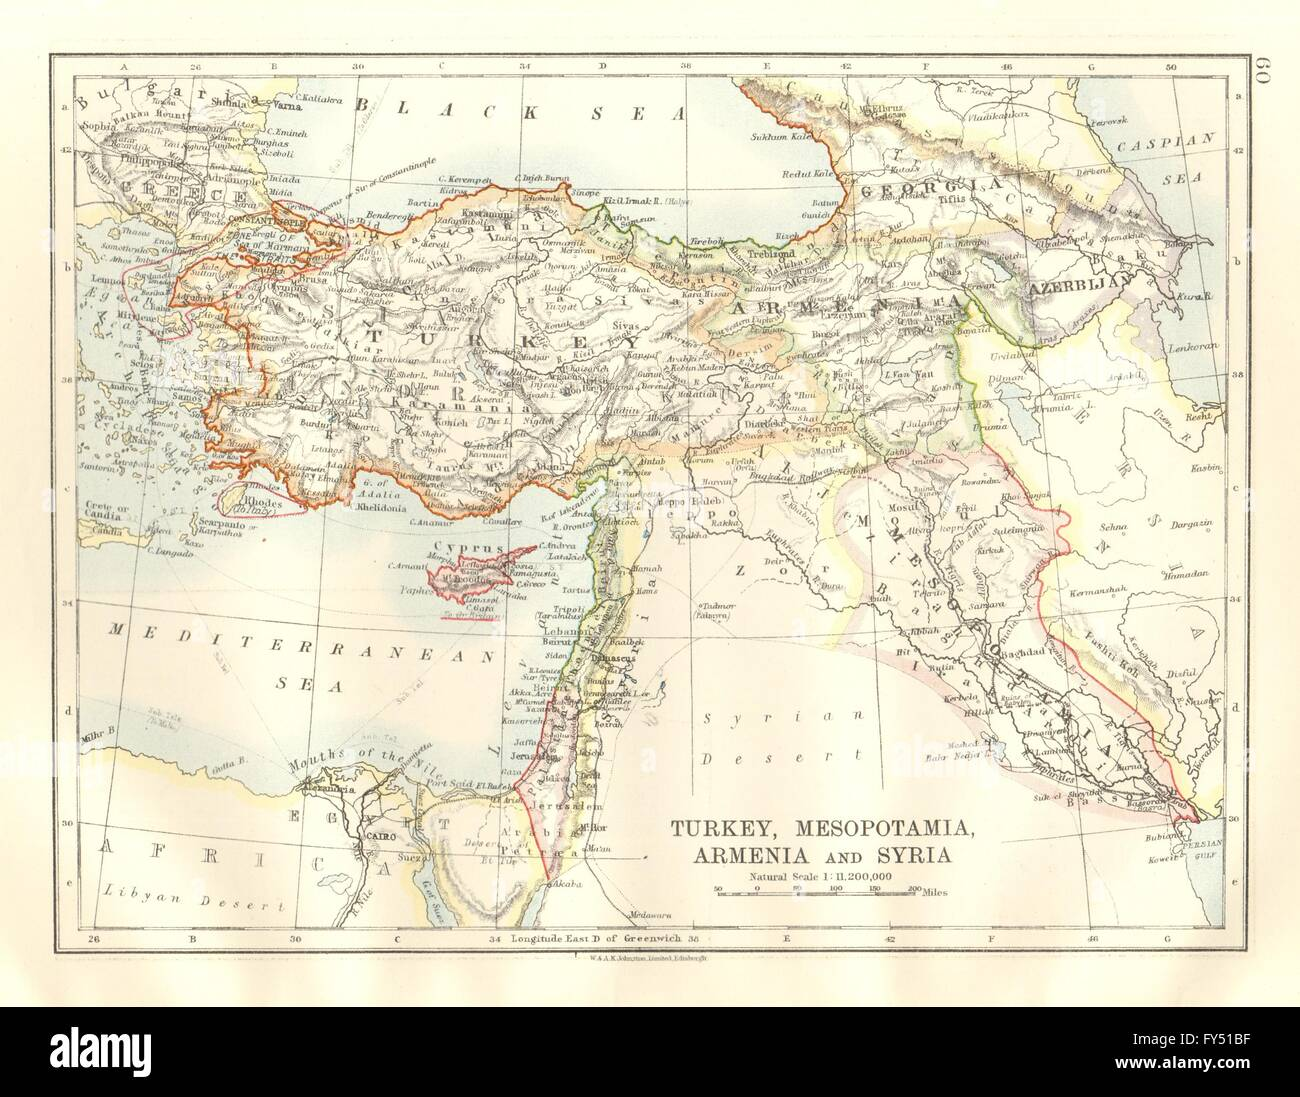 MIDDLE EAST. Treaty of Sevres. Armenia. Zone of Straits ...